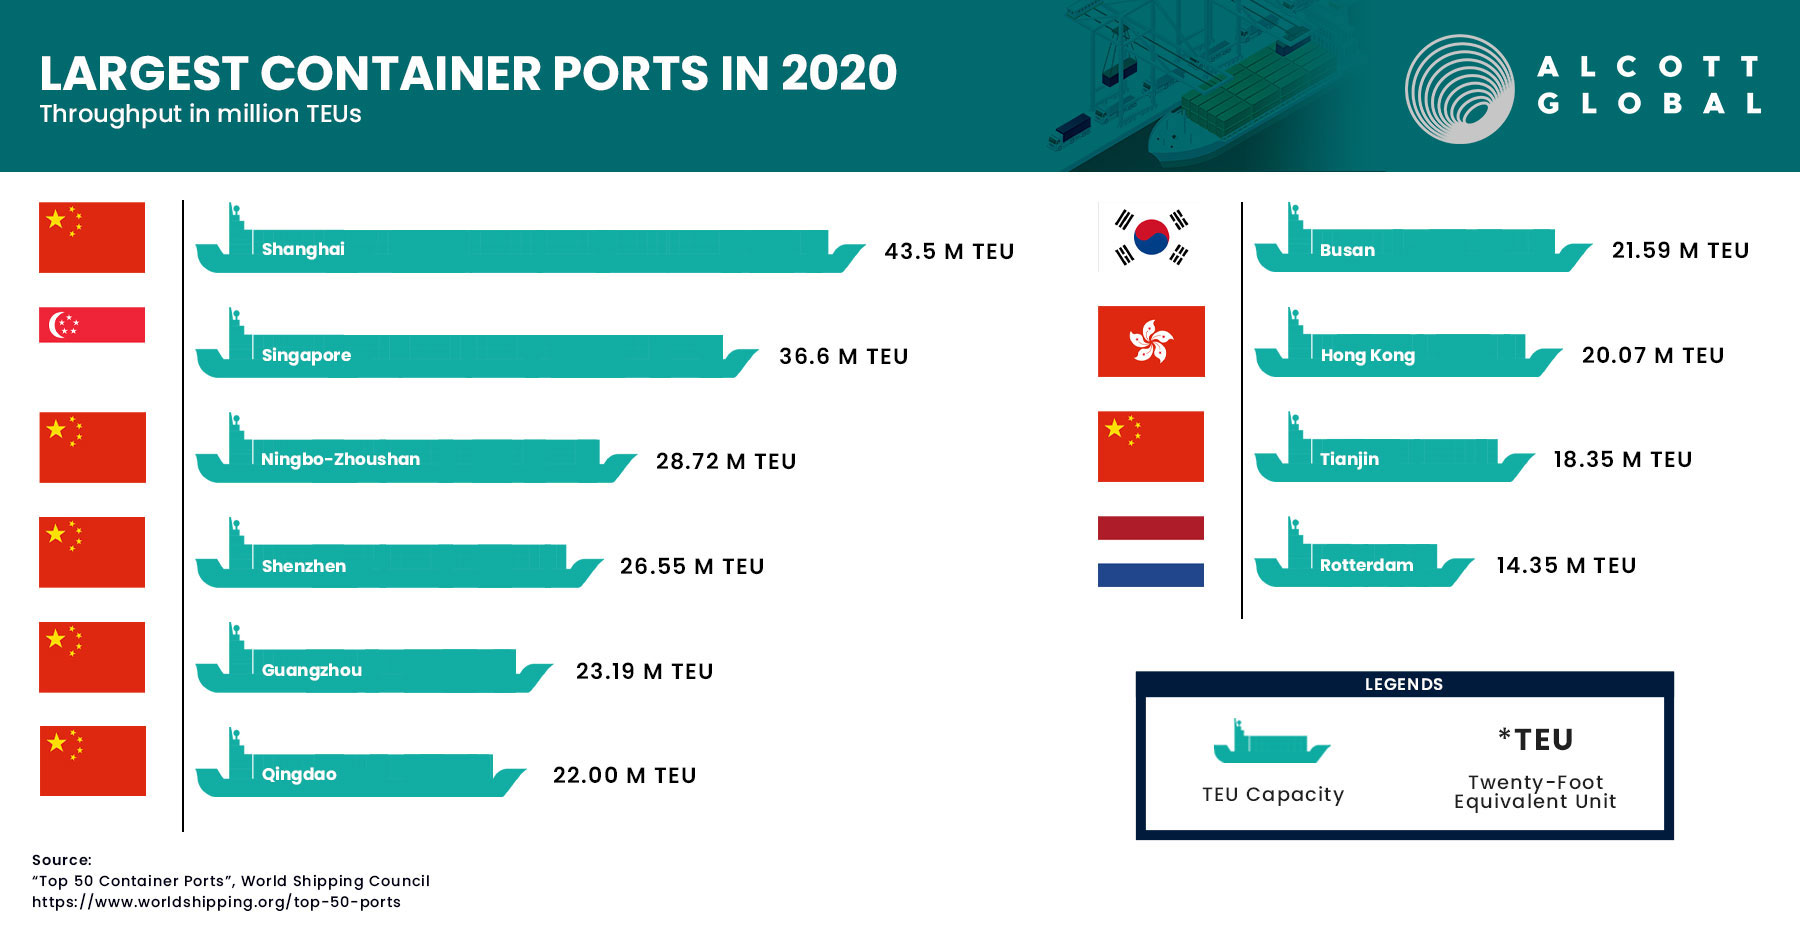 Top 10 - World's Largest Container Ports in 2020 Featured Image